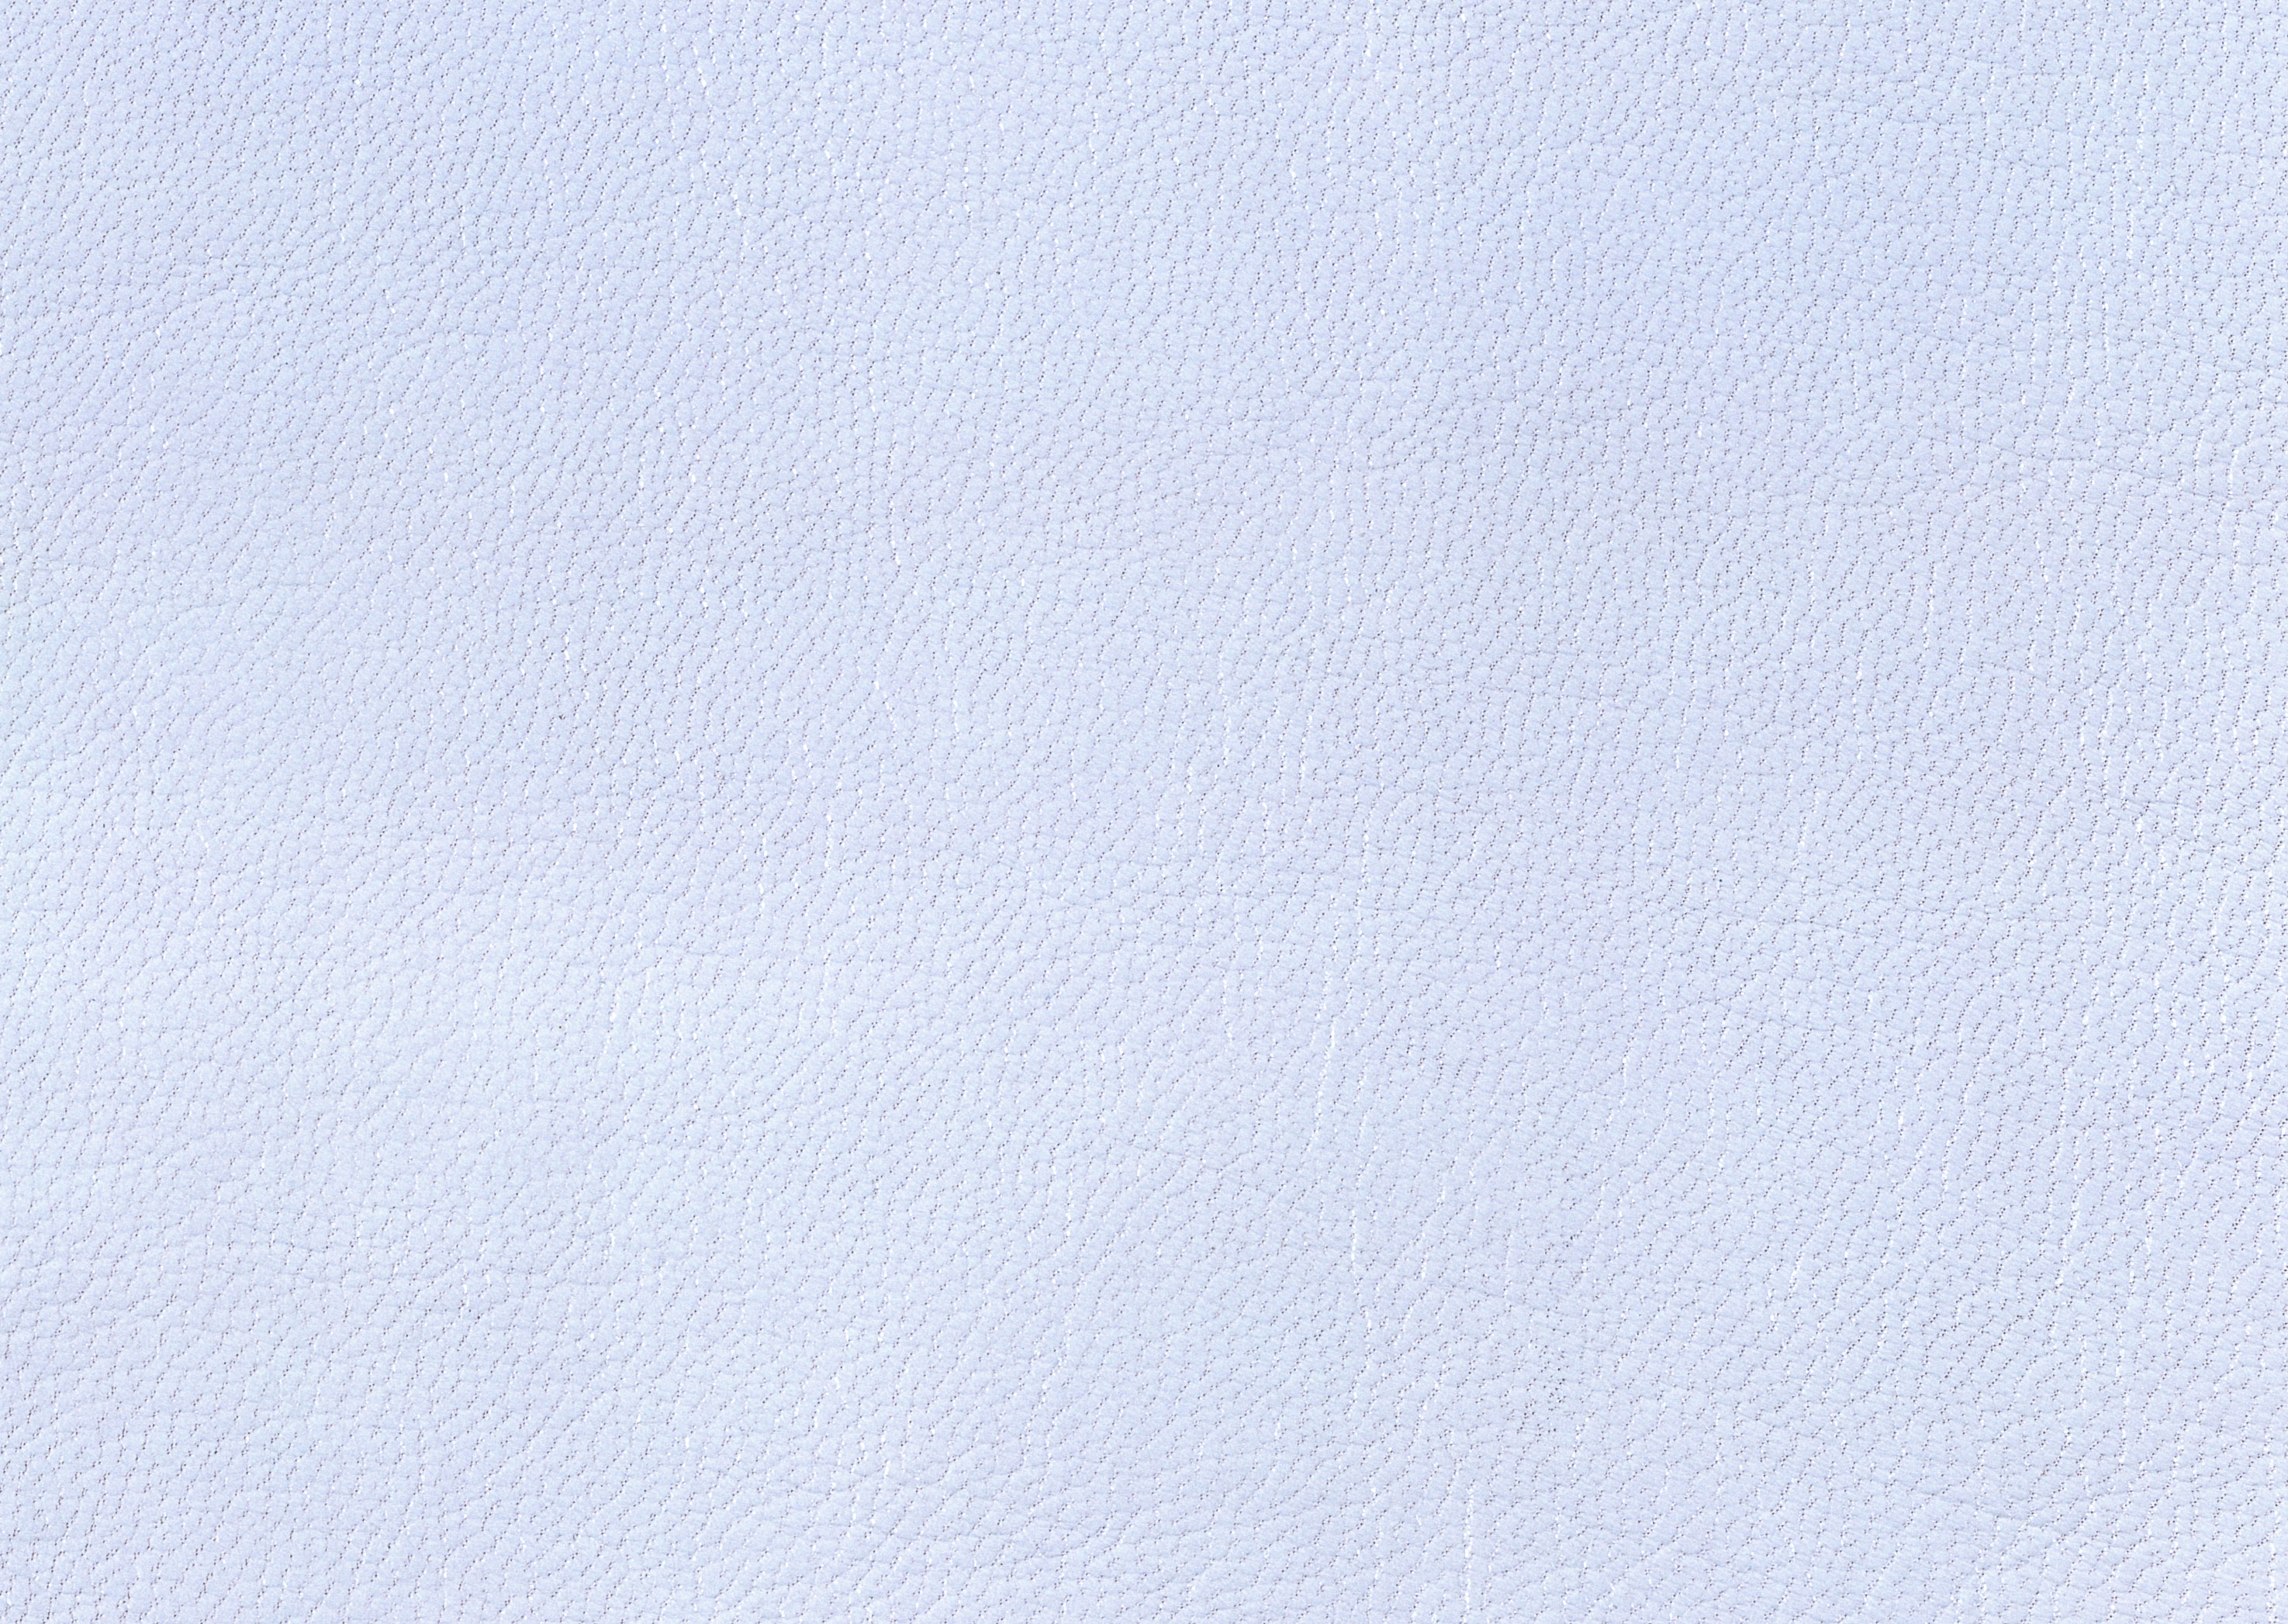 White leather texture background image free download